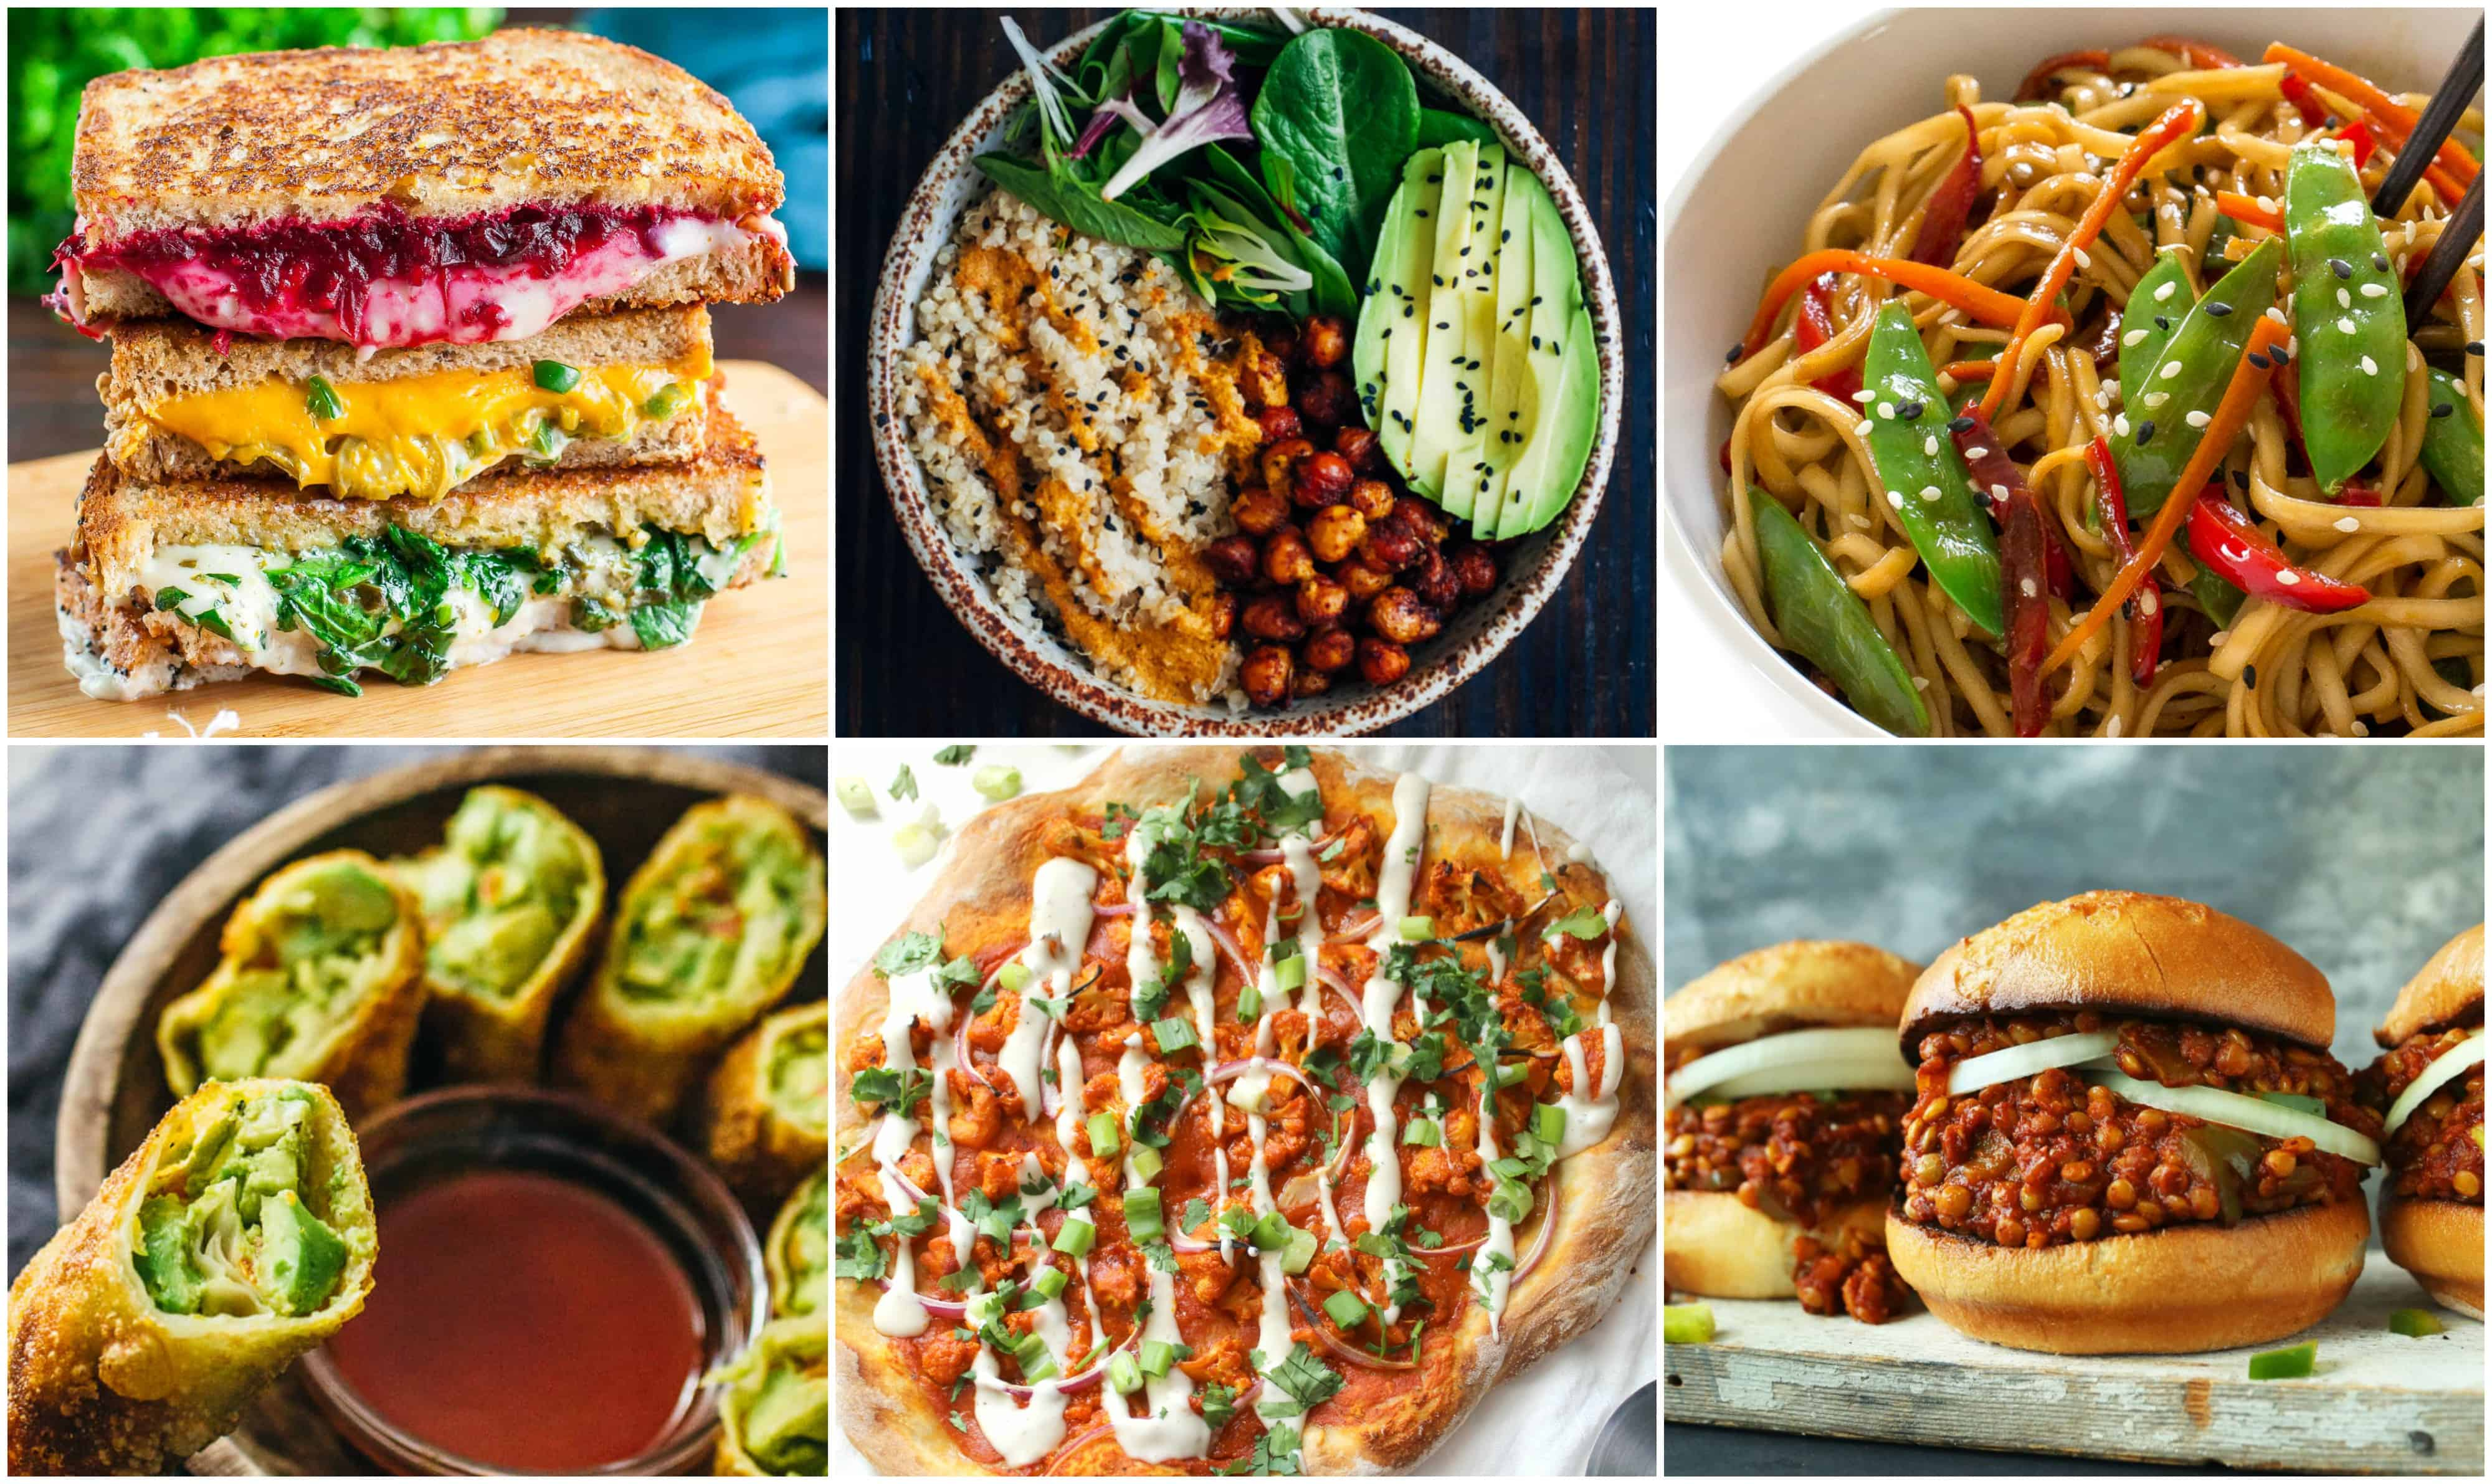 Discussion on this topic: 20 Vegetarian Foods That Surprisingly Aren't, 20-vegetarian-foods-that-surprisingly-arent/